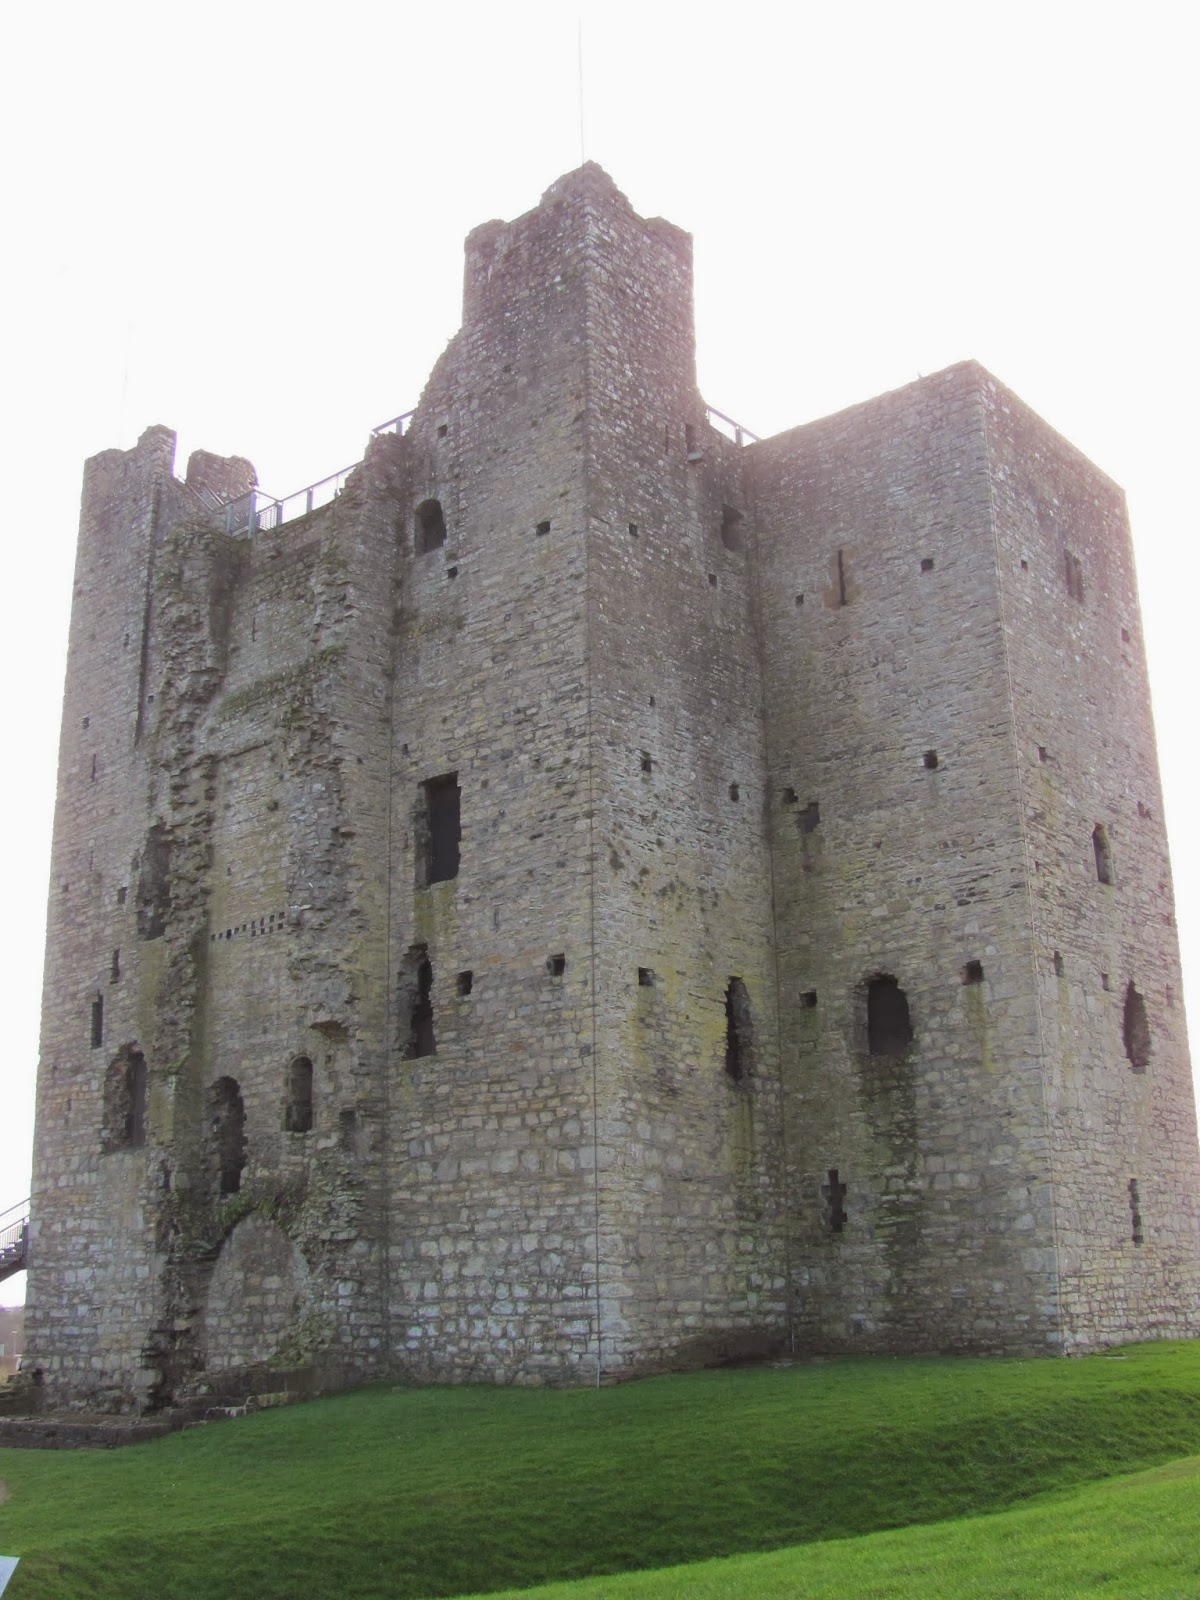 Trim Castle Keep in Trim, Ireland